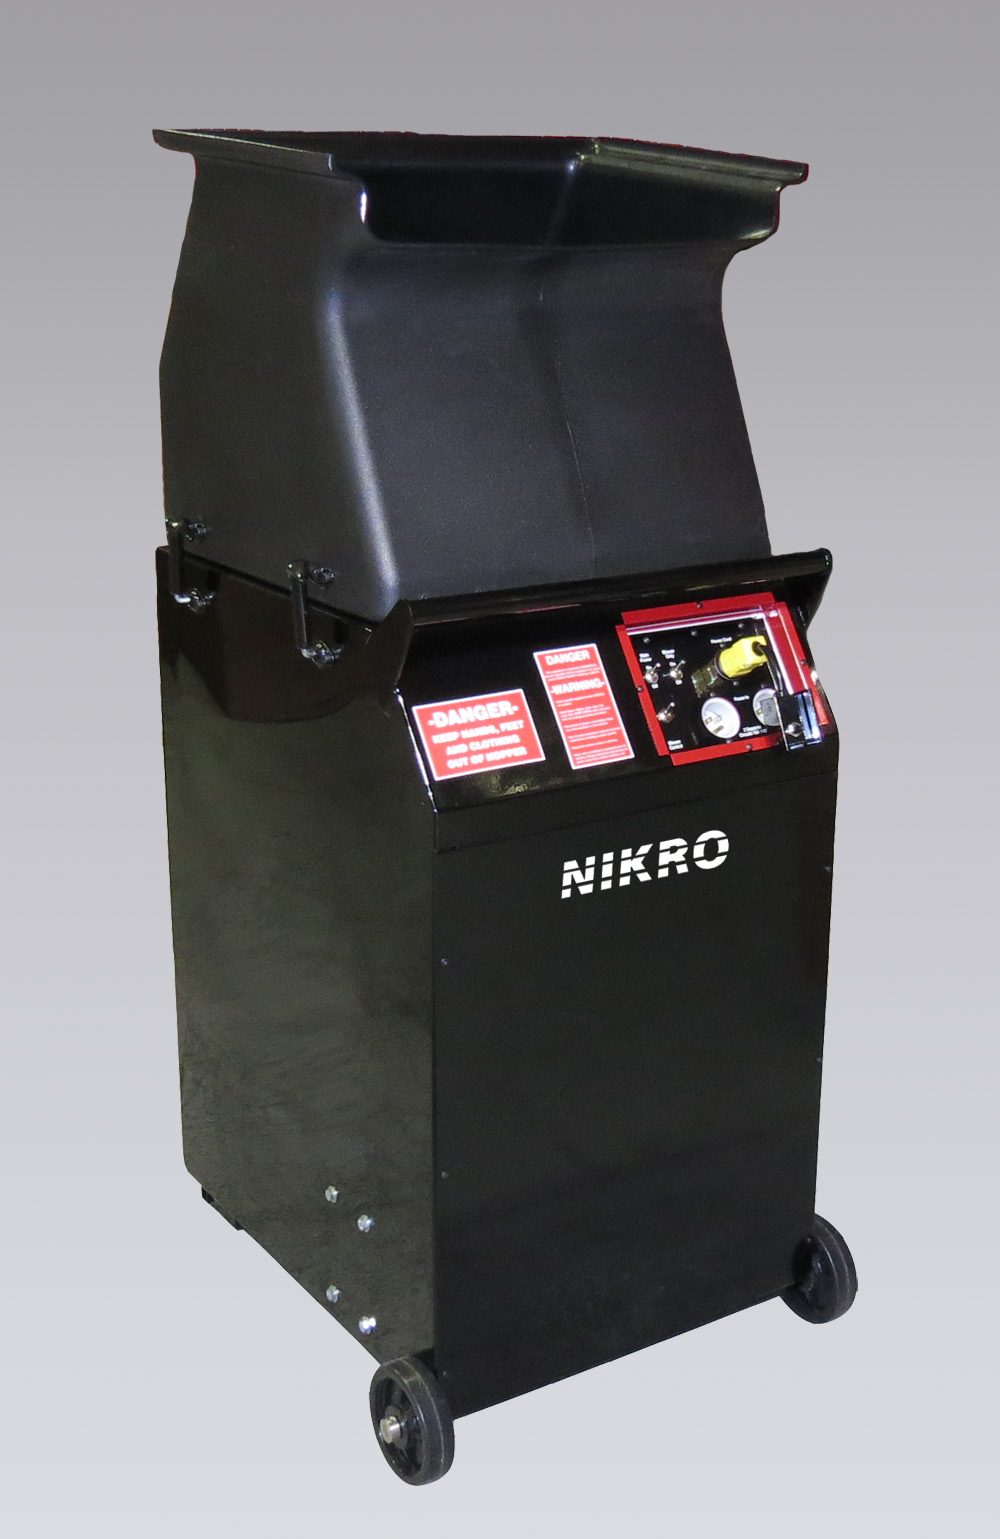 NIKRO IBPKG1 - Insulation Blowing Package - Insulation Blowing Machine 